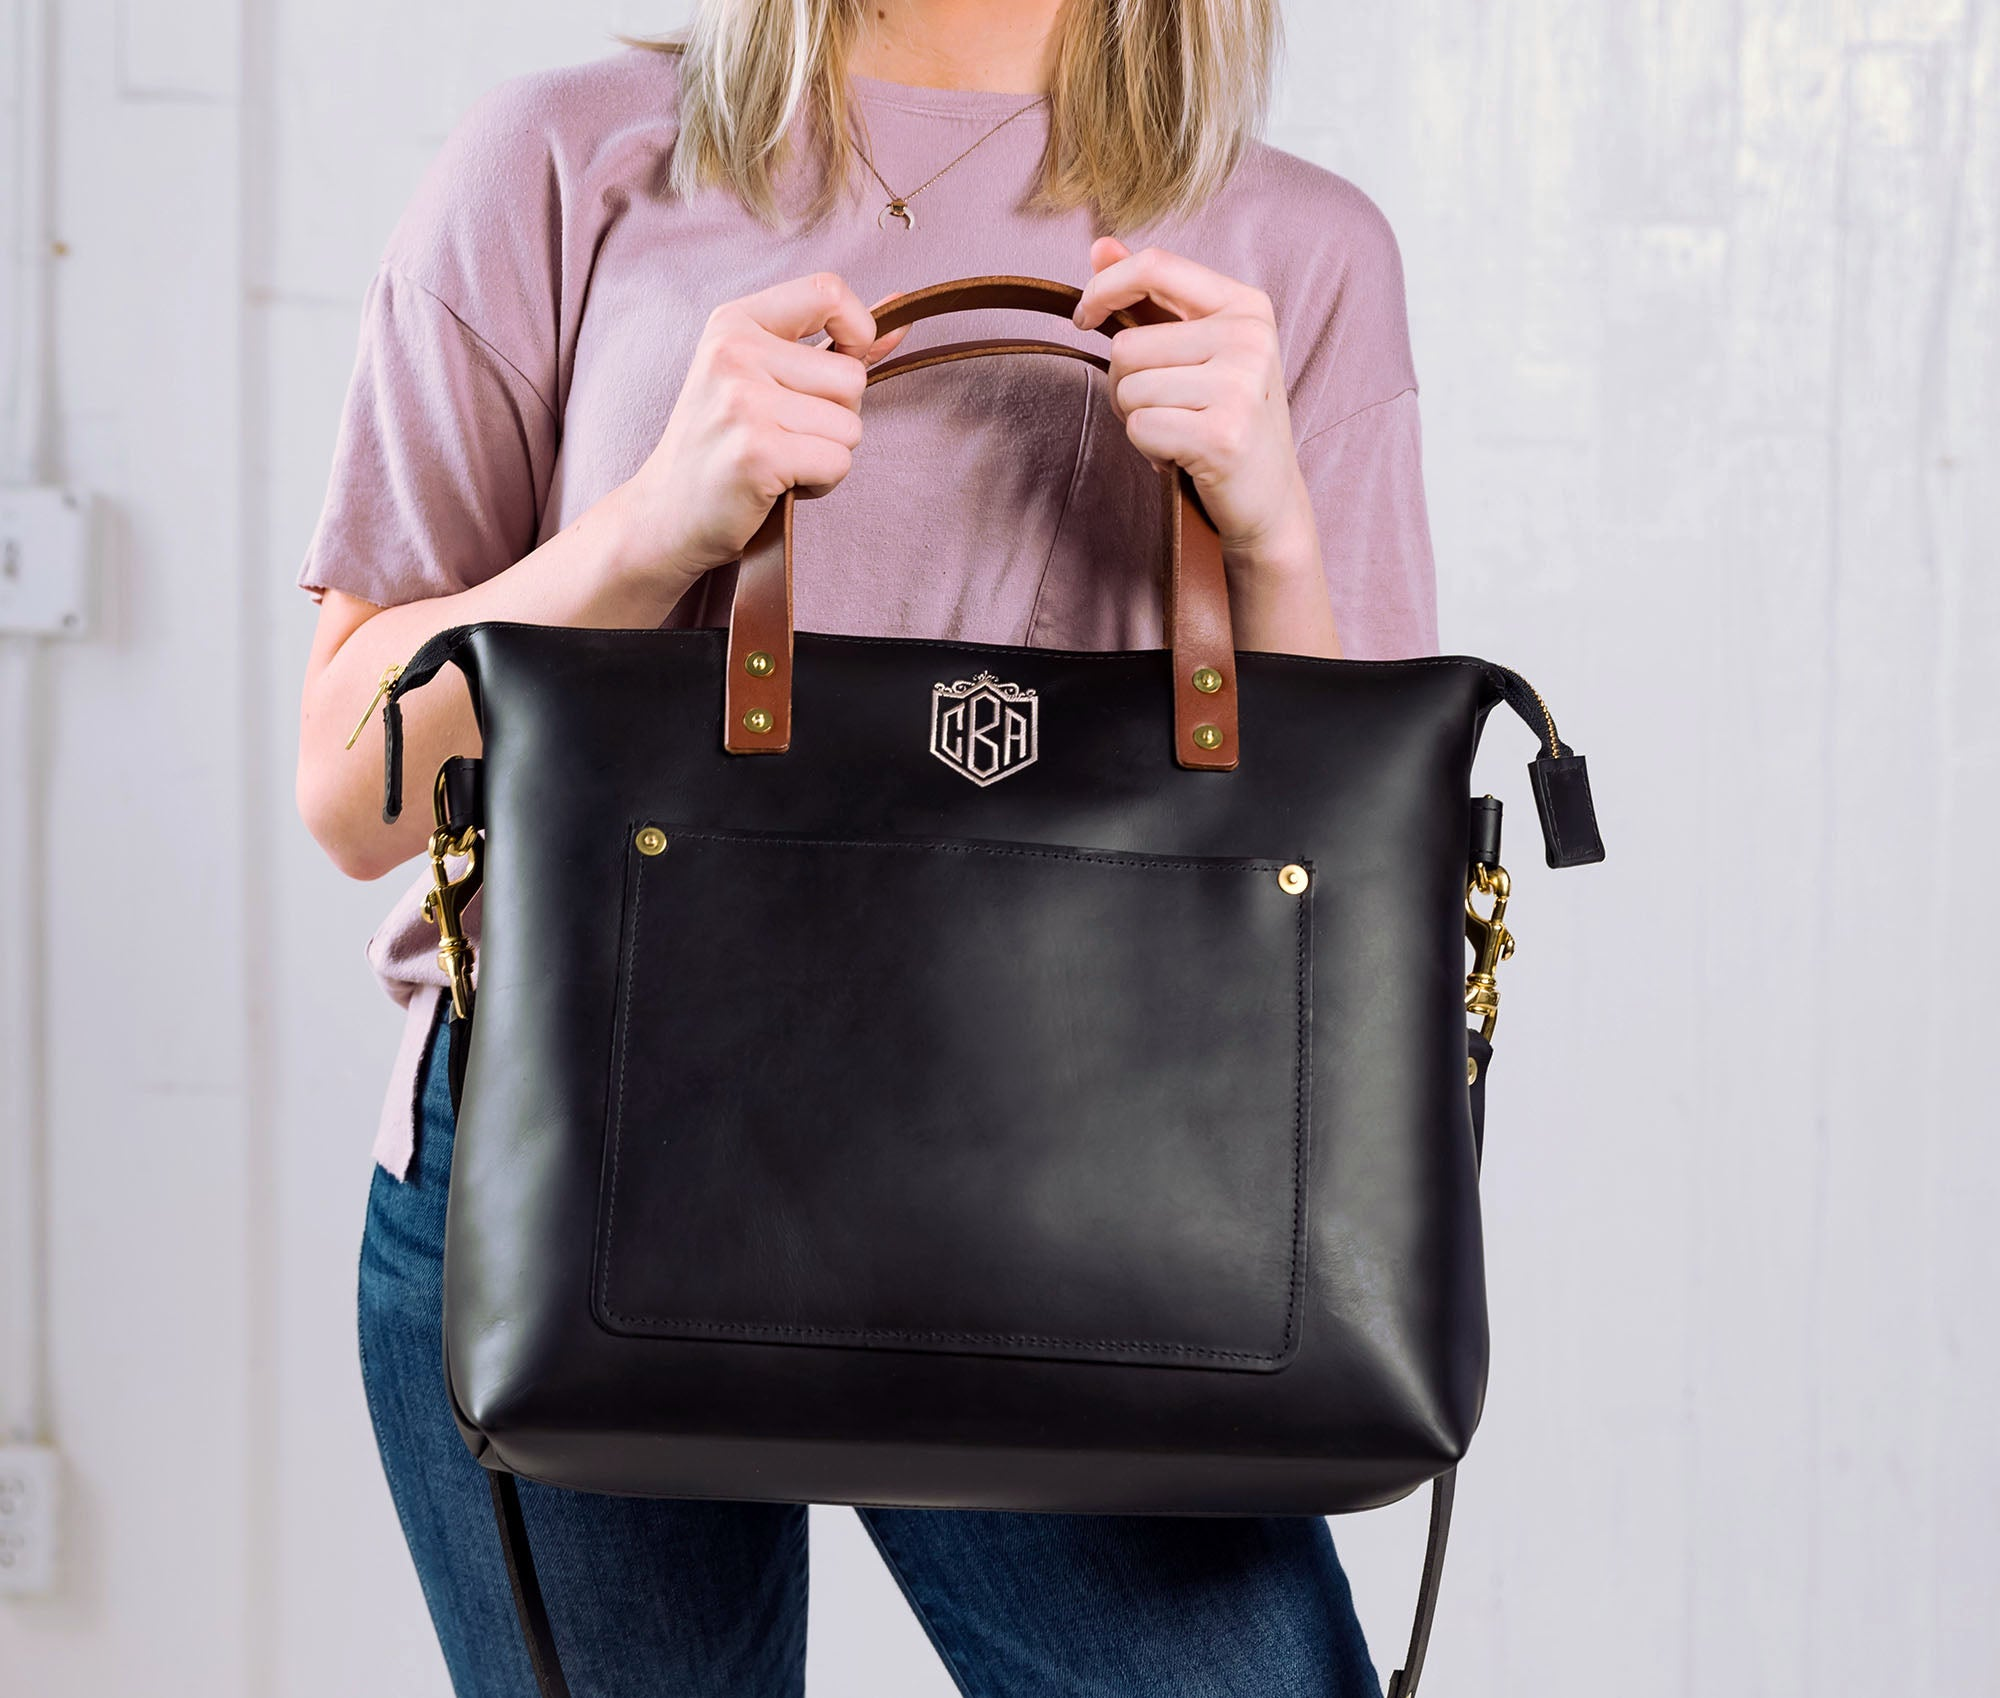 Lifetime Crossbody Tote